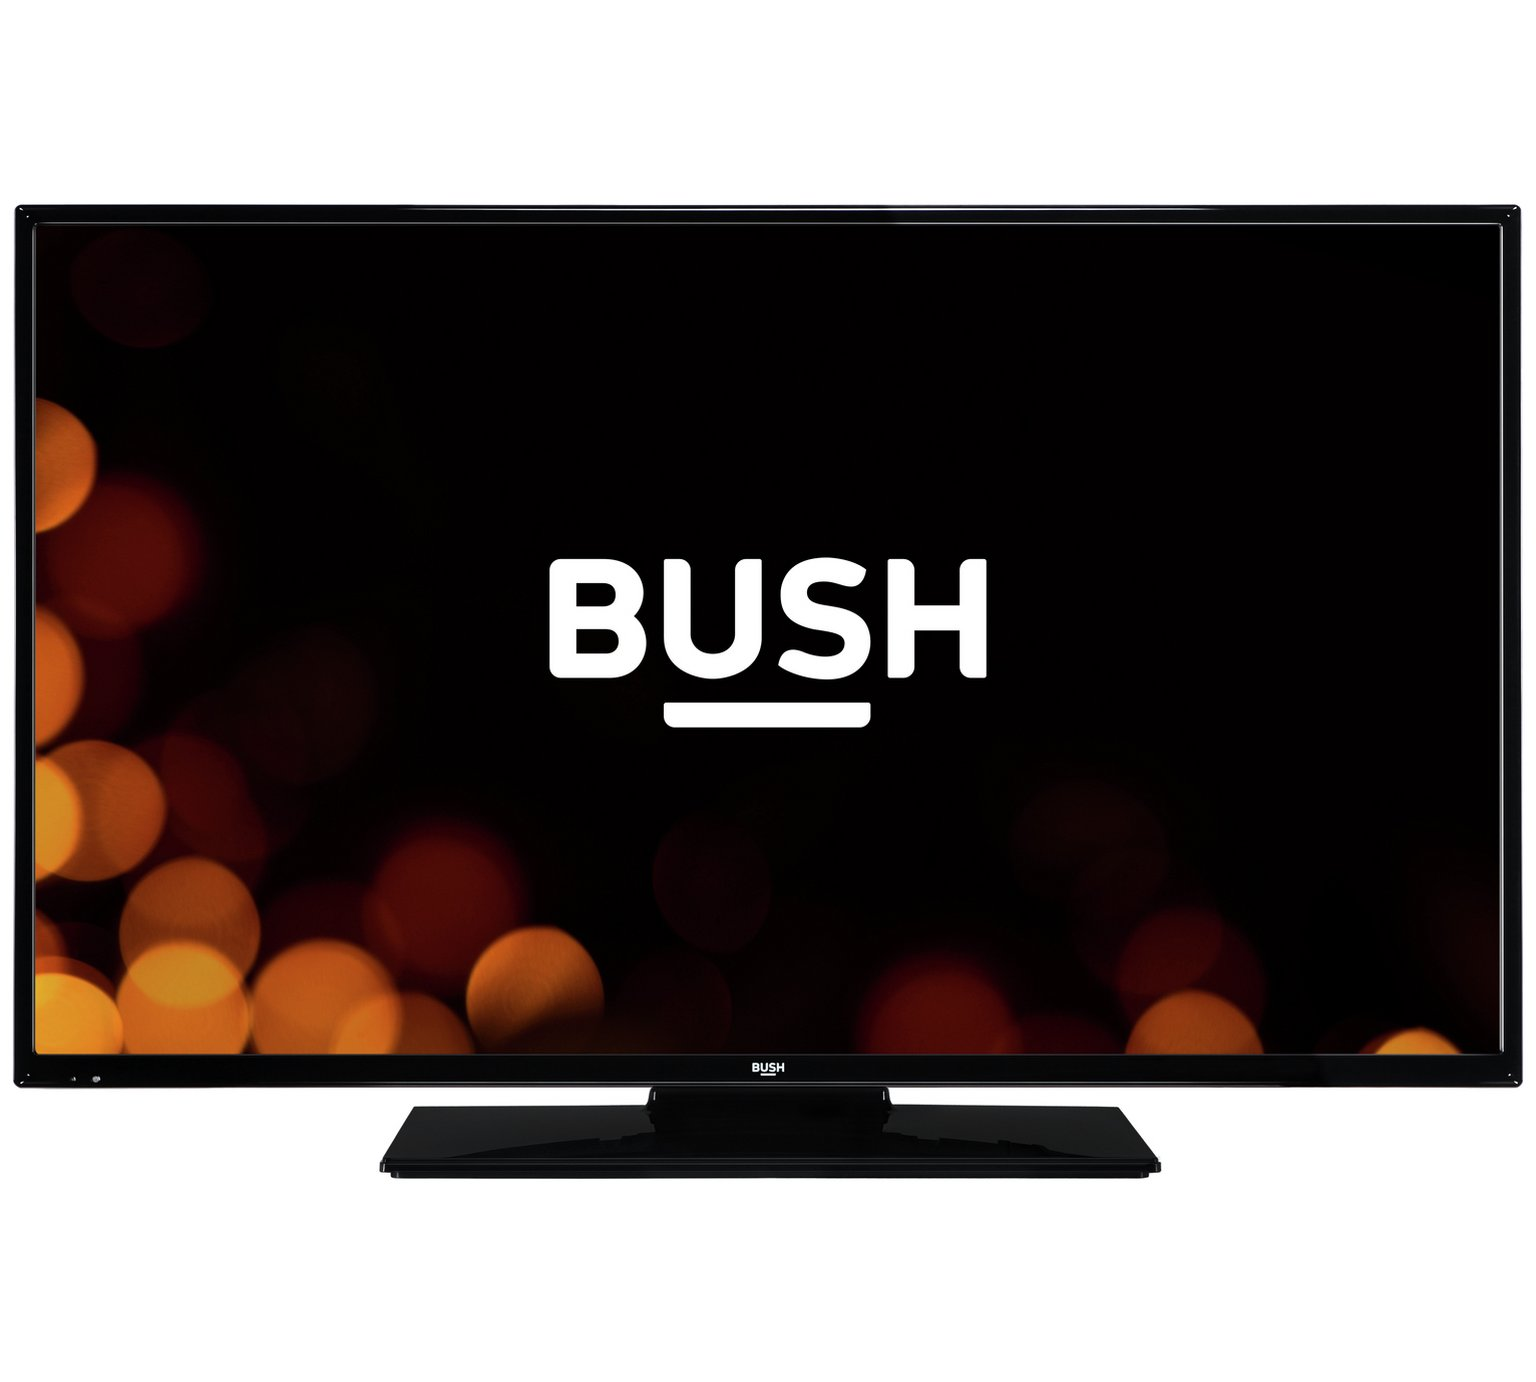 Bush TV Software Problem (Vestel) led40127fhdcntd – Turns